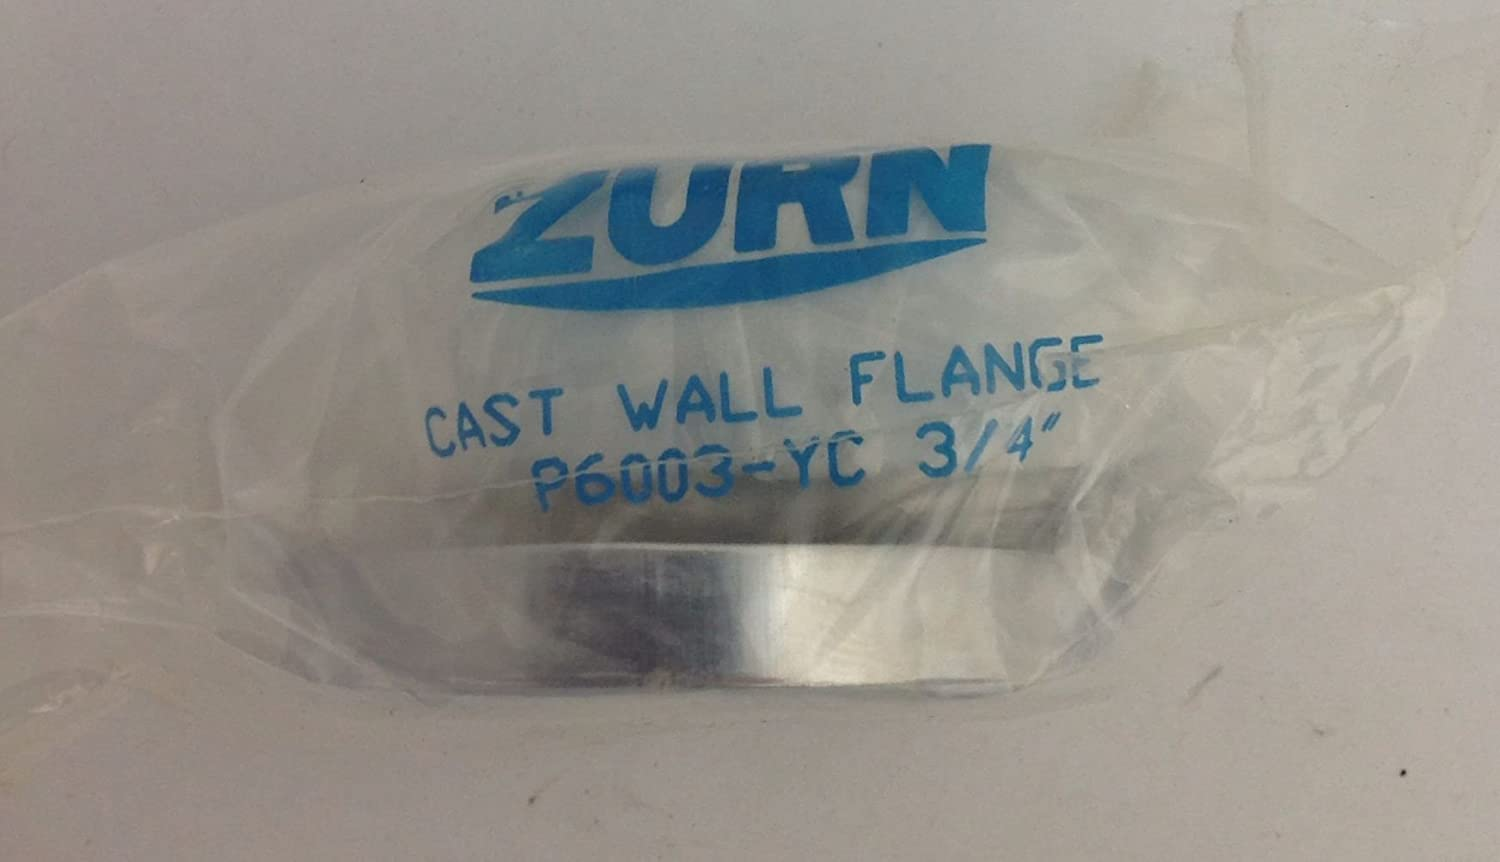 "ZURN  CAST WALL FLANGE P6003-YC 3//4/""   NEW"